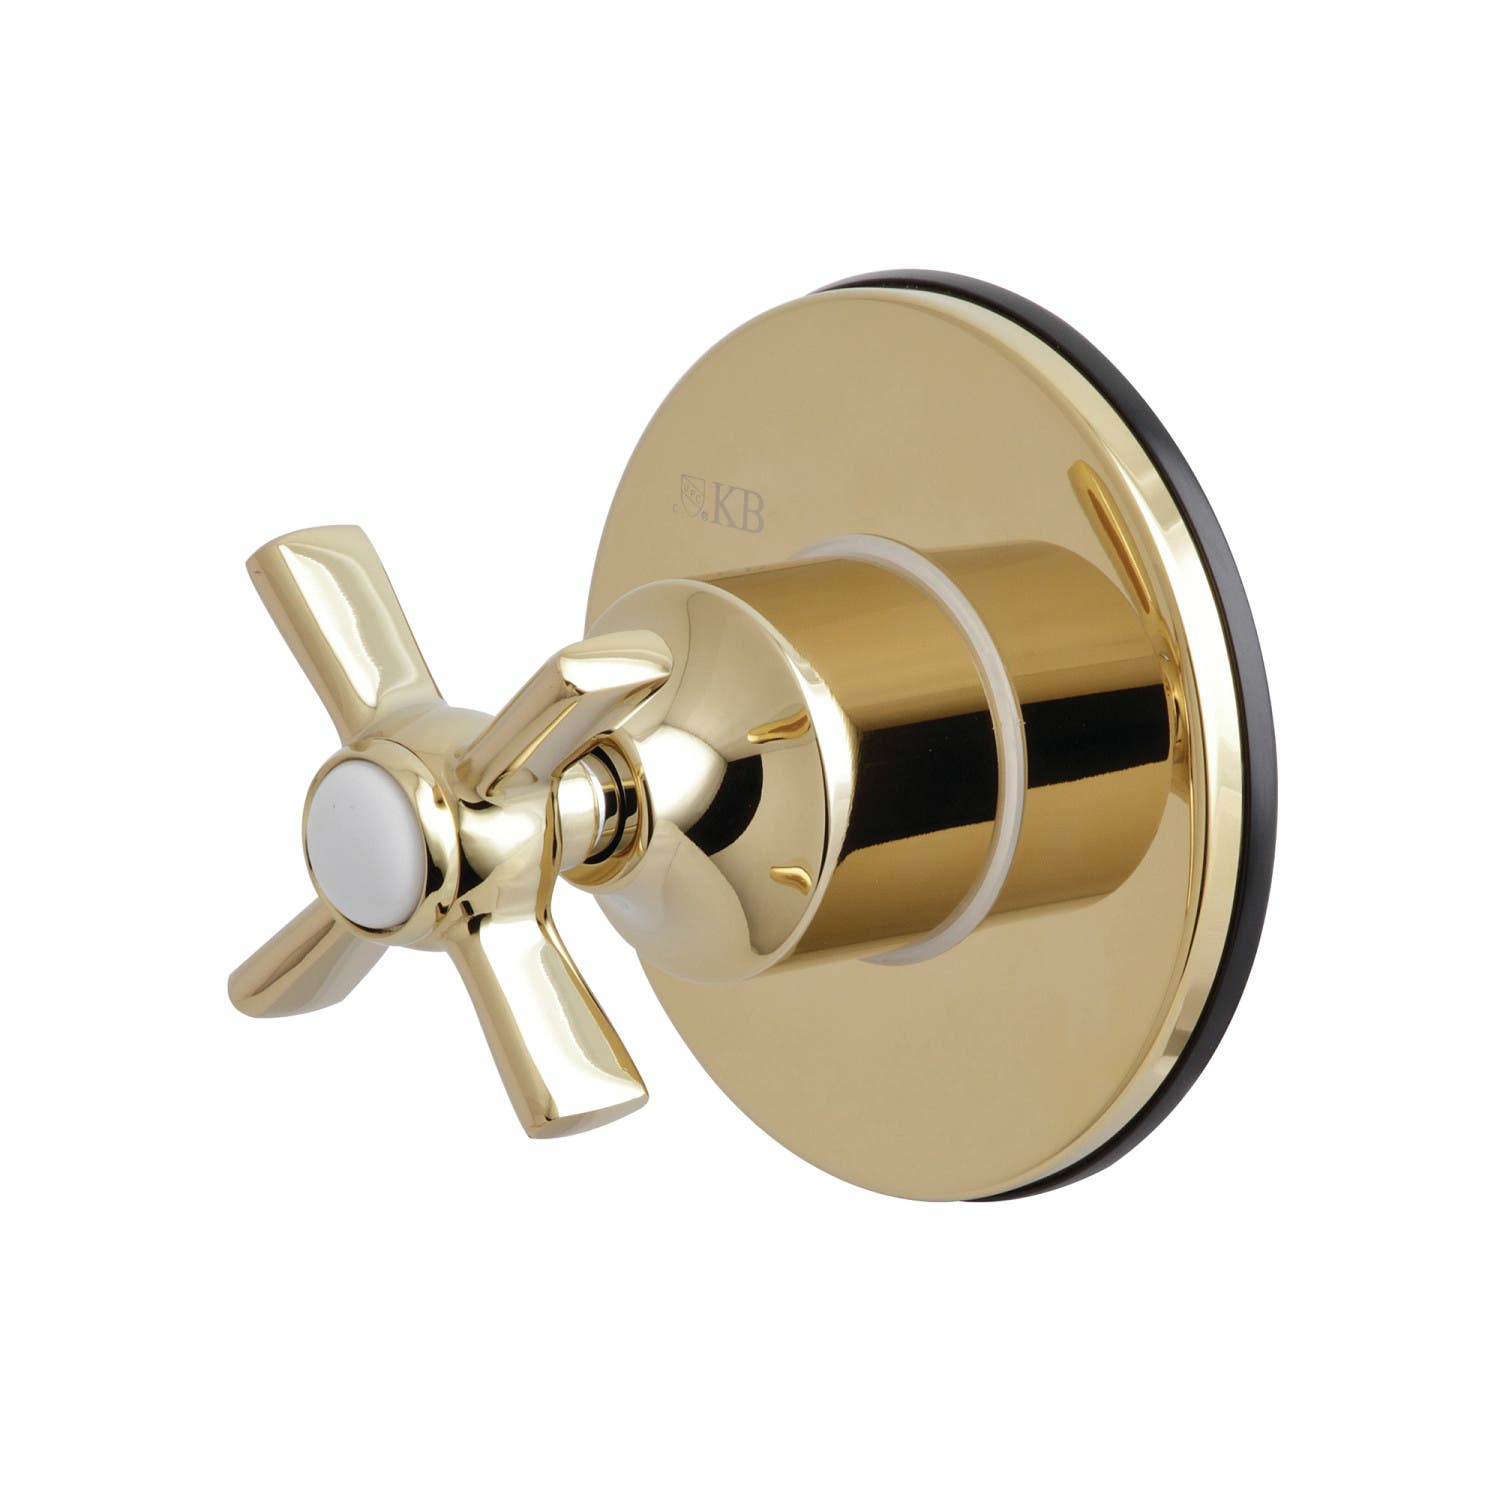 Kingston Brass KS3032ZX Three-Way Diverter Valve with Single-Handle and Round Plate, Polished Brass